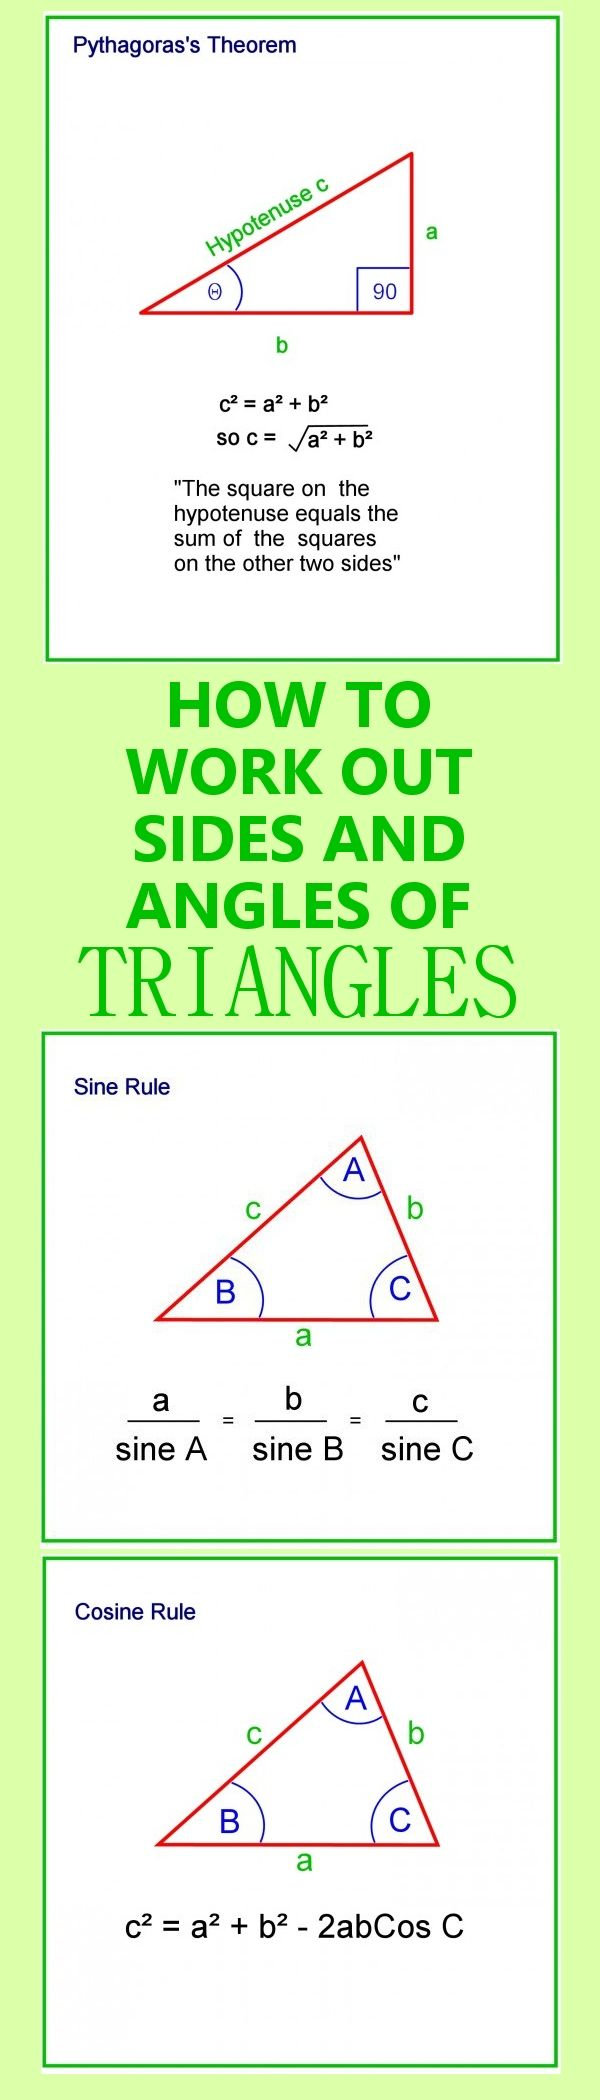 How to Calculate the Sides and Angles of Triangles | Triangle math ...